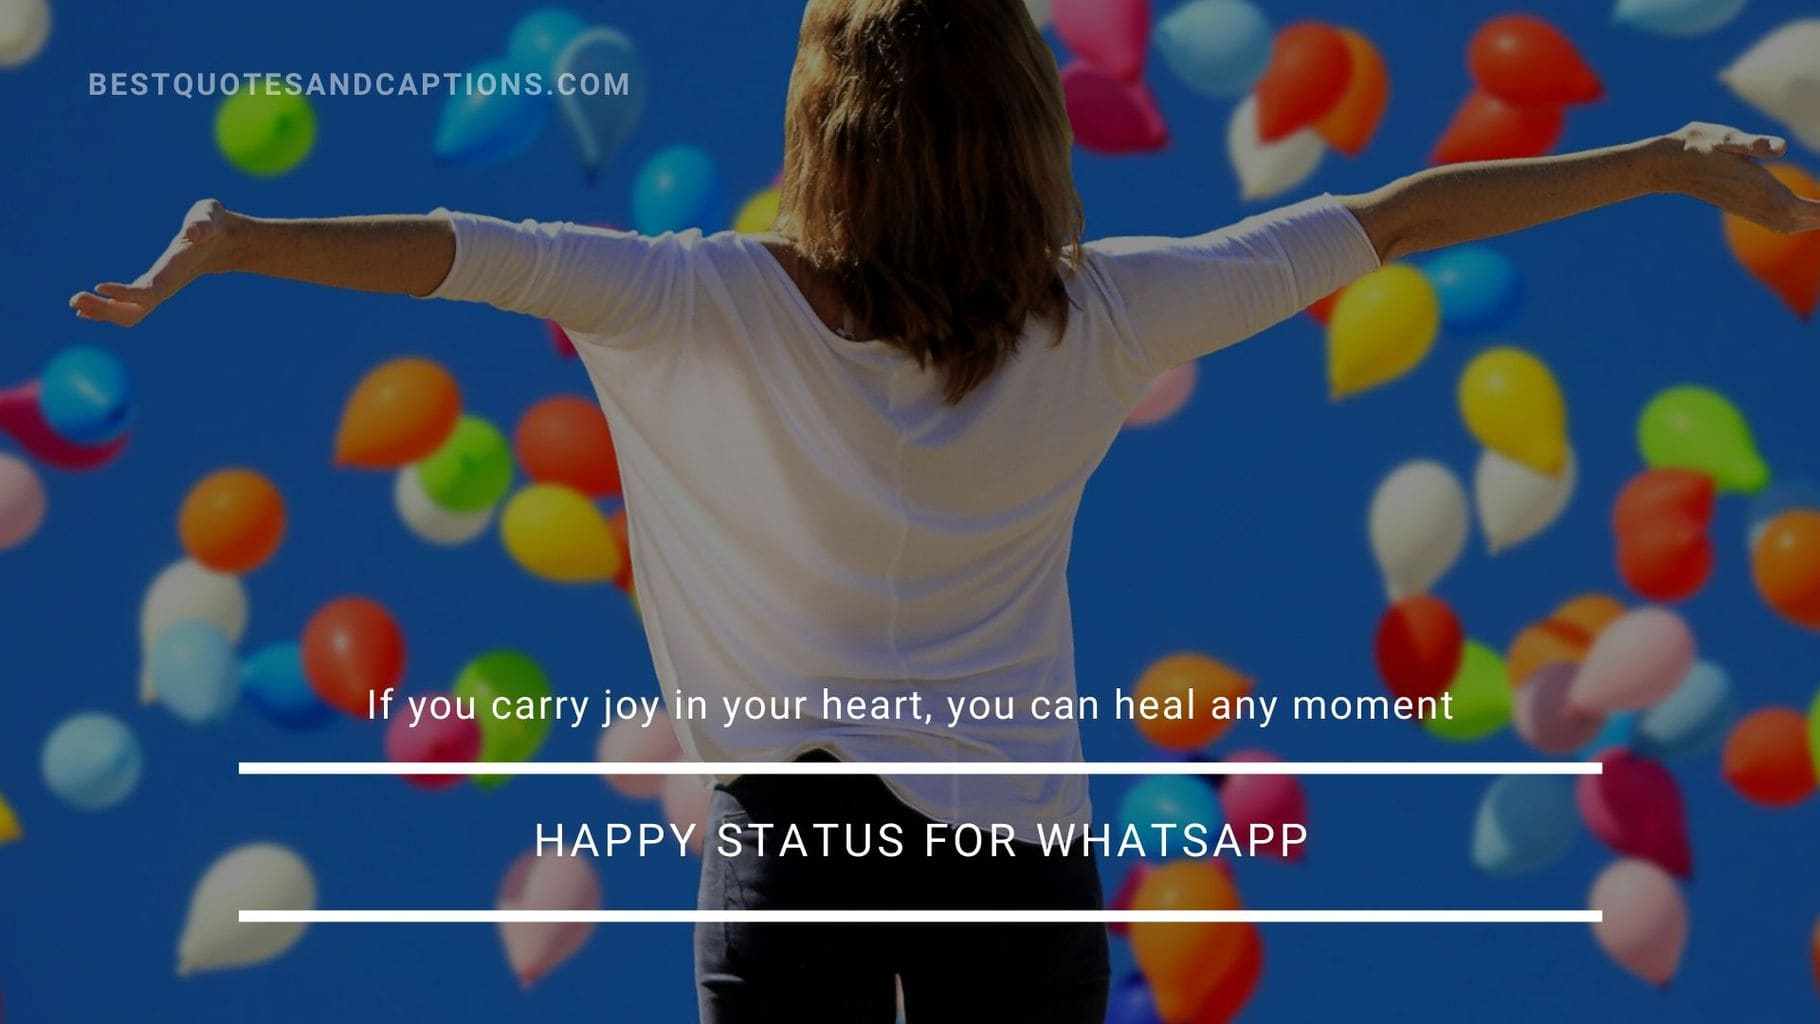 Happy Status for Whatsapp in English